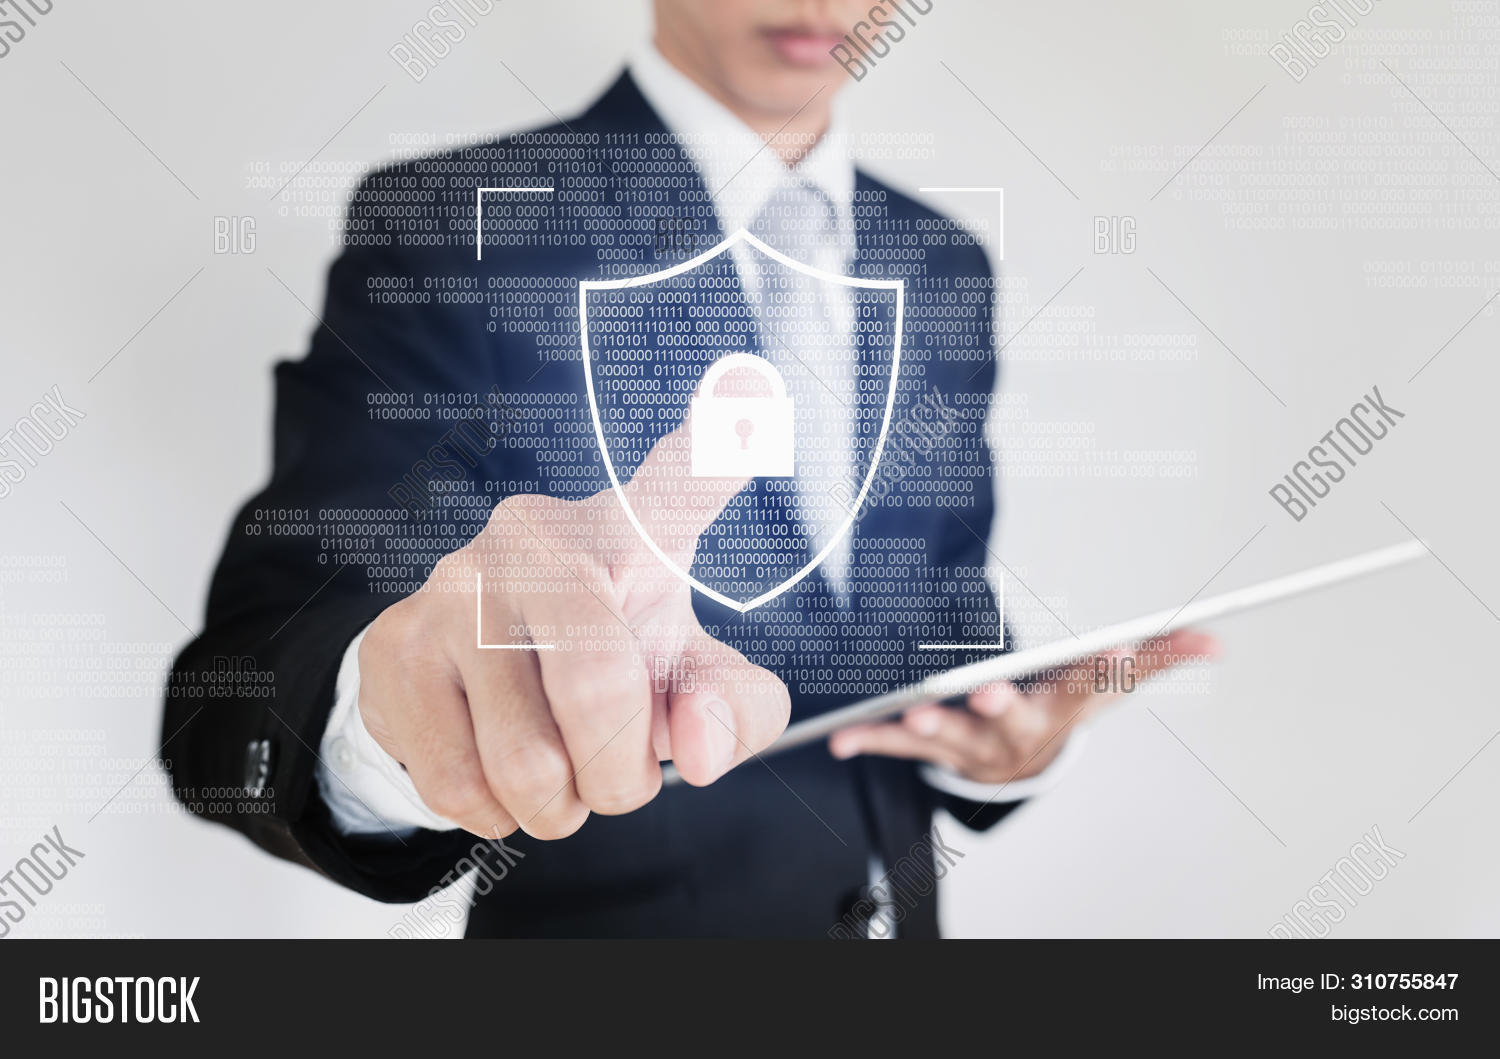 access,ai,augmented,blockchain,business,businessman,cloud,concept,connect,connection,cyber,cybersecurity,cyberspace,data,device,digital,e-commerce,finger,information,interface,internet,lock,media,network,networking,online,password,pressing,privacy,private,protect,protection,reality,safe,safety,scan,secure,security,shield,software,system,technology,unlock,verification,virtual,virus